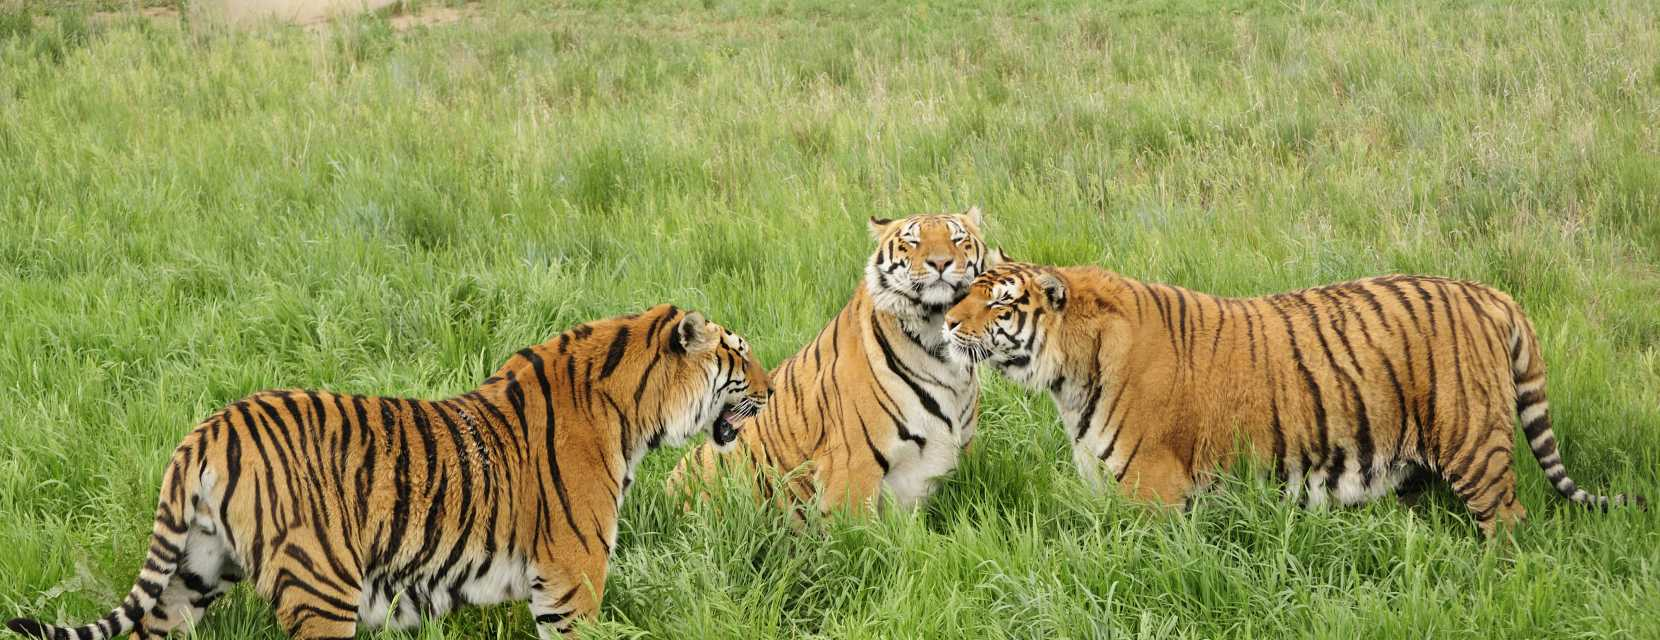 Tigers at the Wild Animal Sanctuary.